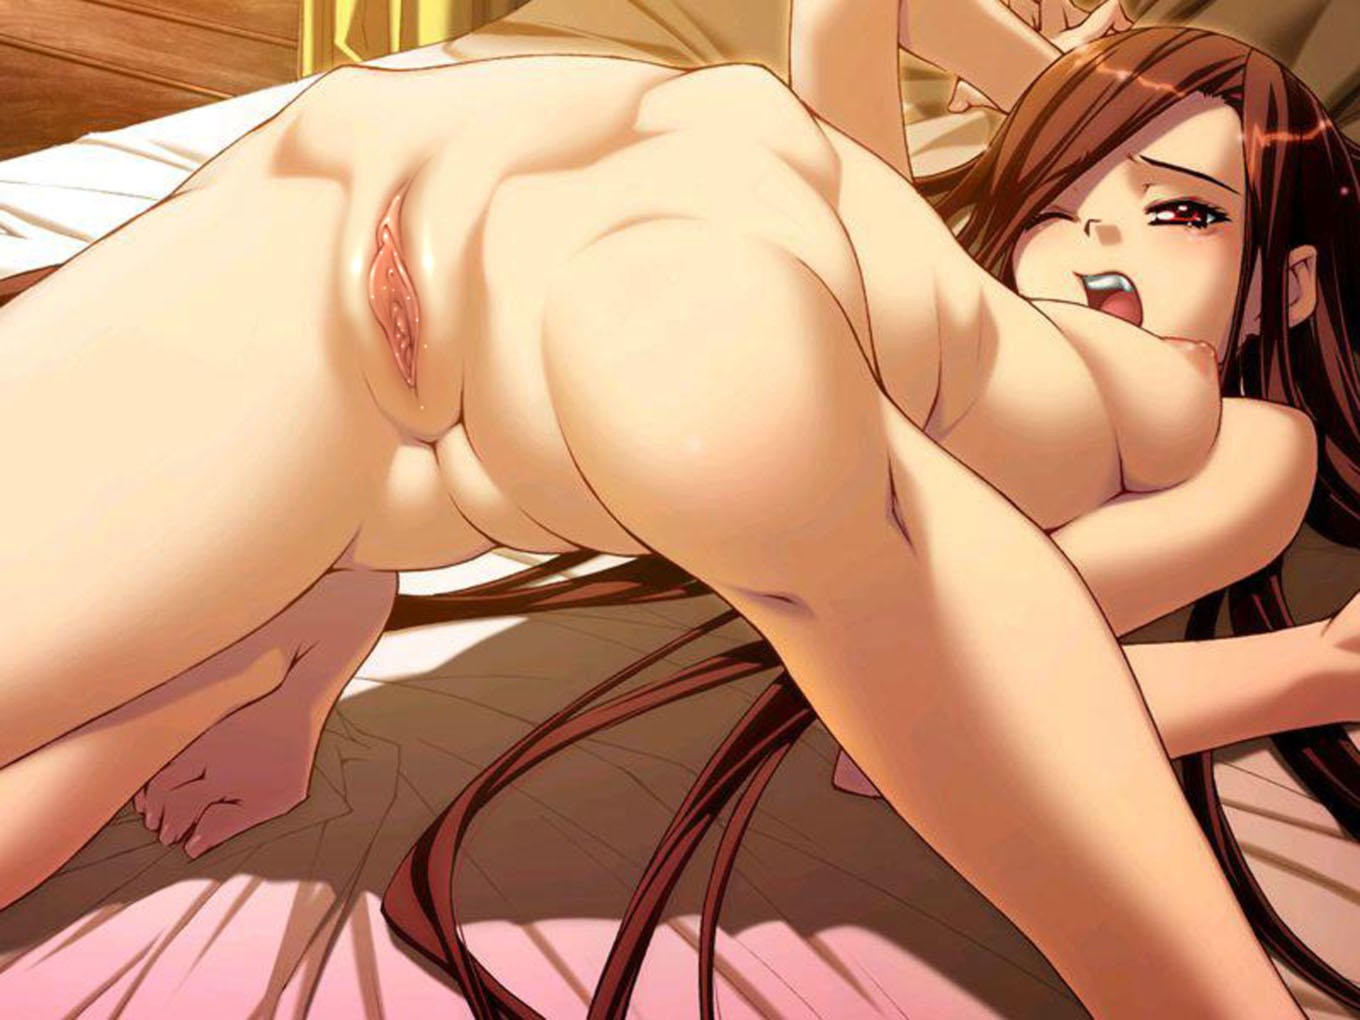 Free download nude sex anime pics xxx photo